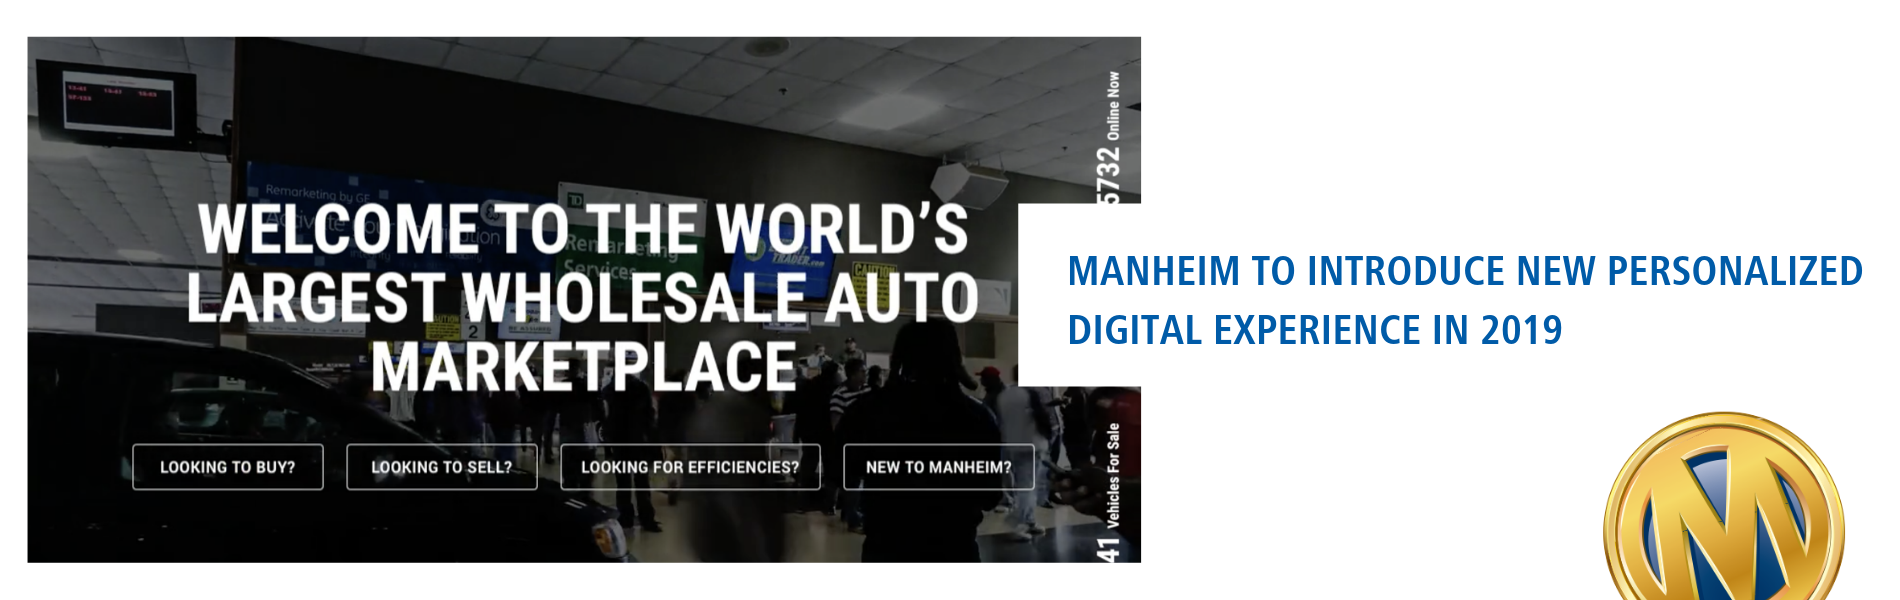 Manheim to Introduce New Personalized Digital Experience in 2019